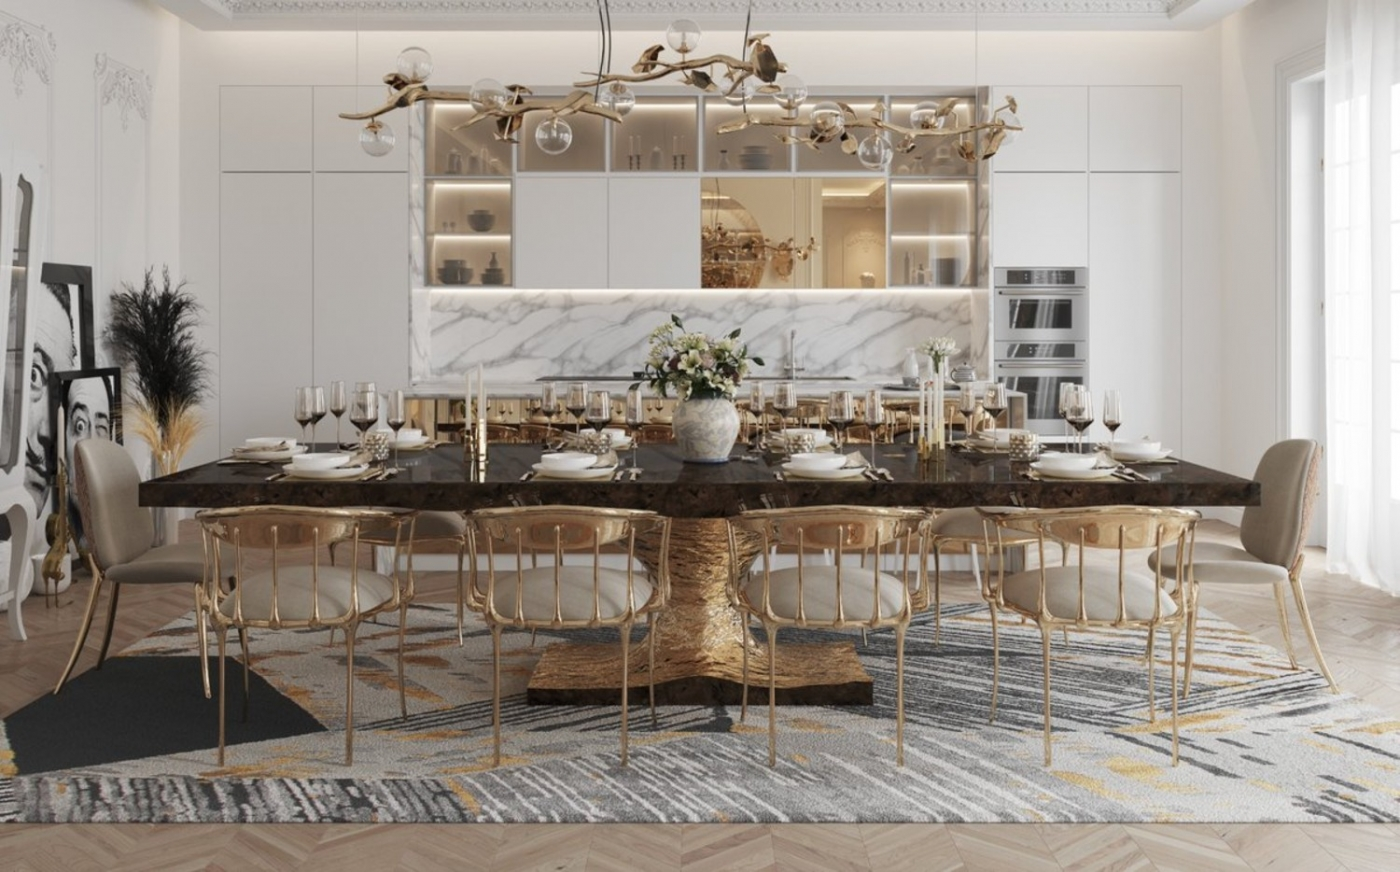 10 Exclusive Furniture Designs For Your Luxury Dining Room! ft luxury dining room 10 Exclusive Furniture Designs For Your Luxury Dining Room! 10 Exclusive Furniture Designs For Your Luxury Dining Room ft 1 1400x872